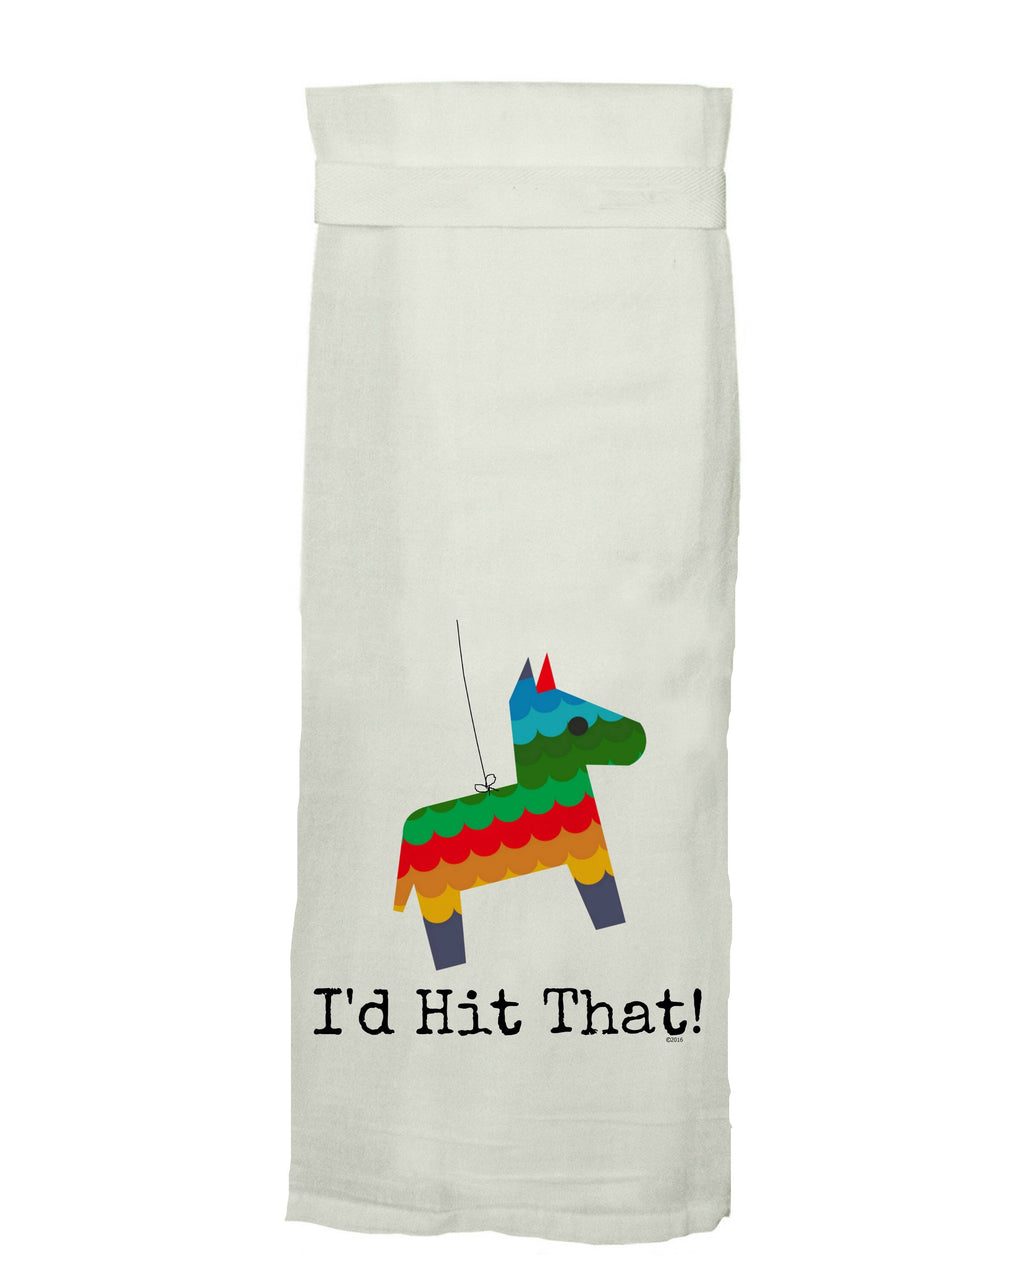 Kitchen, dish towel, I'd hit that